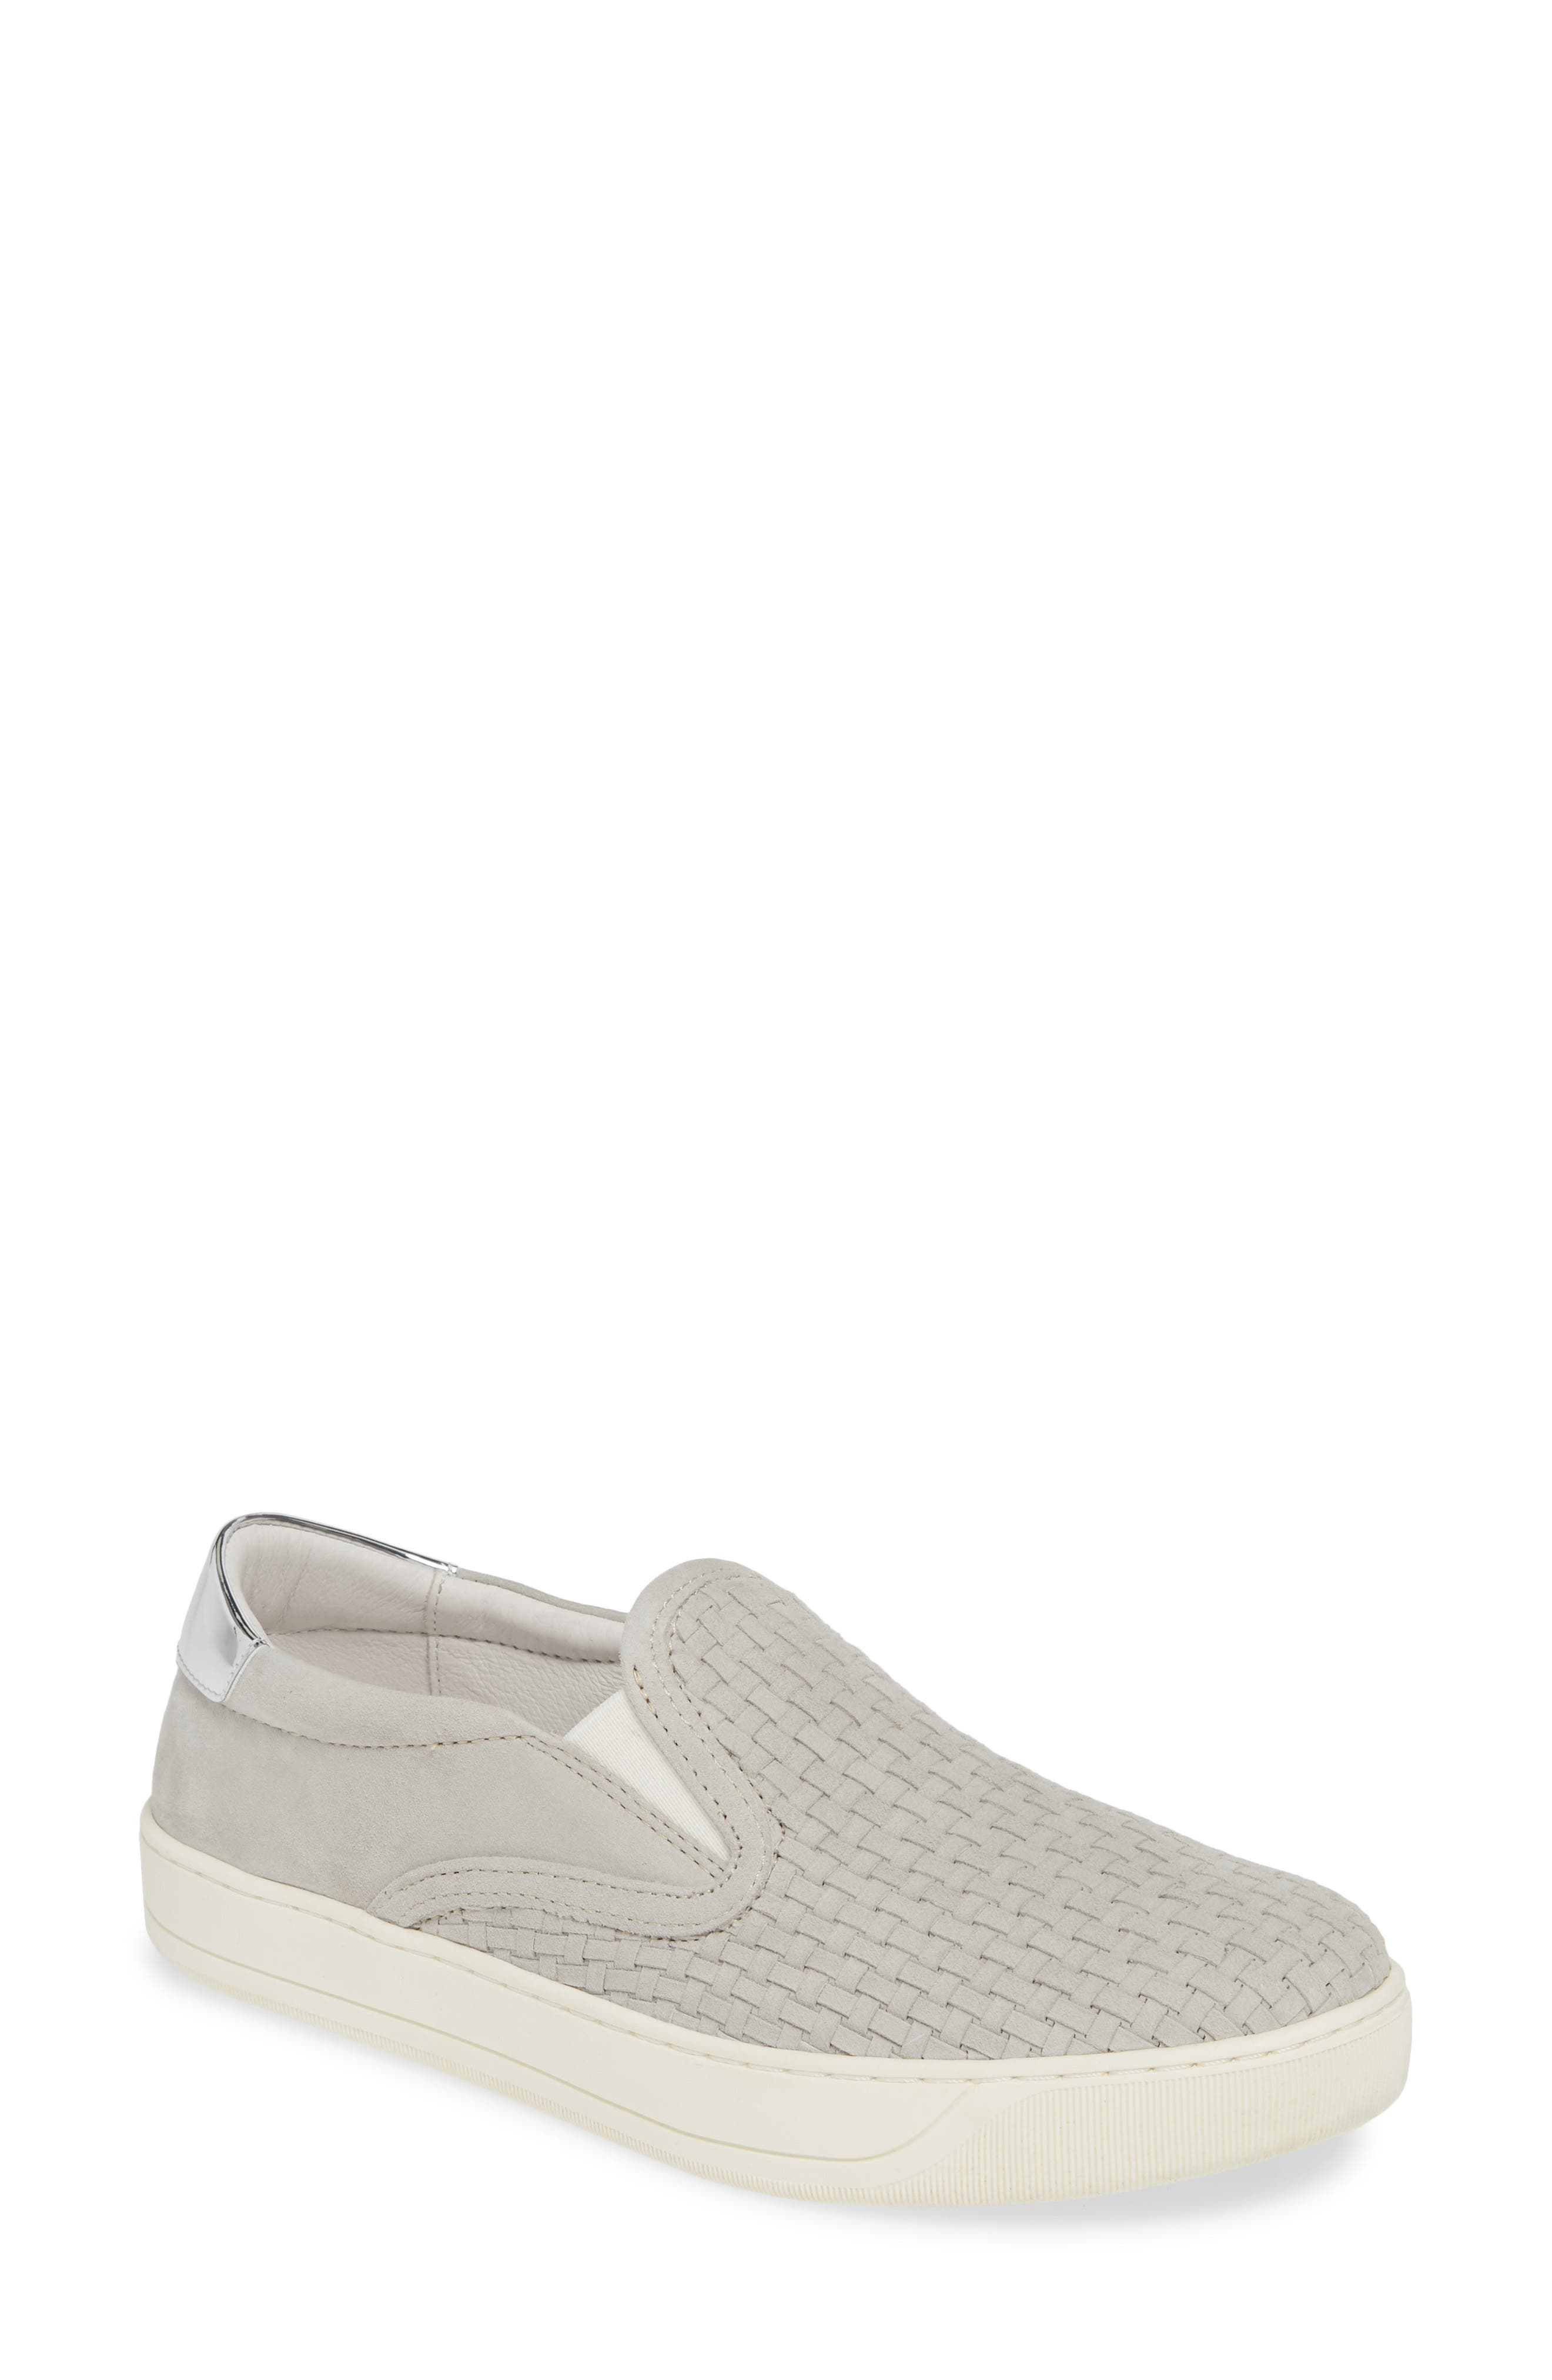 Elaine Woven Slip-On Sneaker,                             Main thumbnail 1, color,                             GREY SUEDE